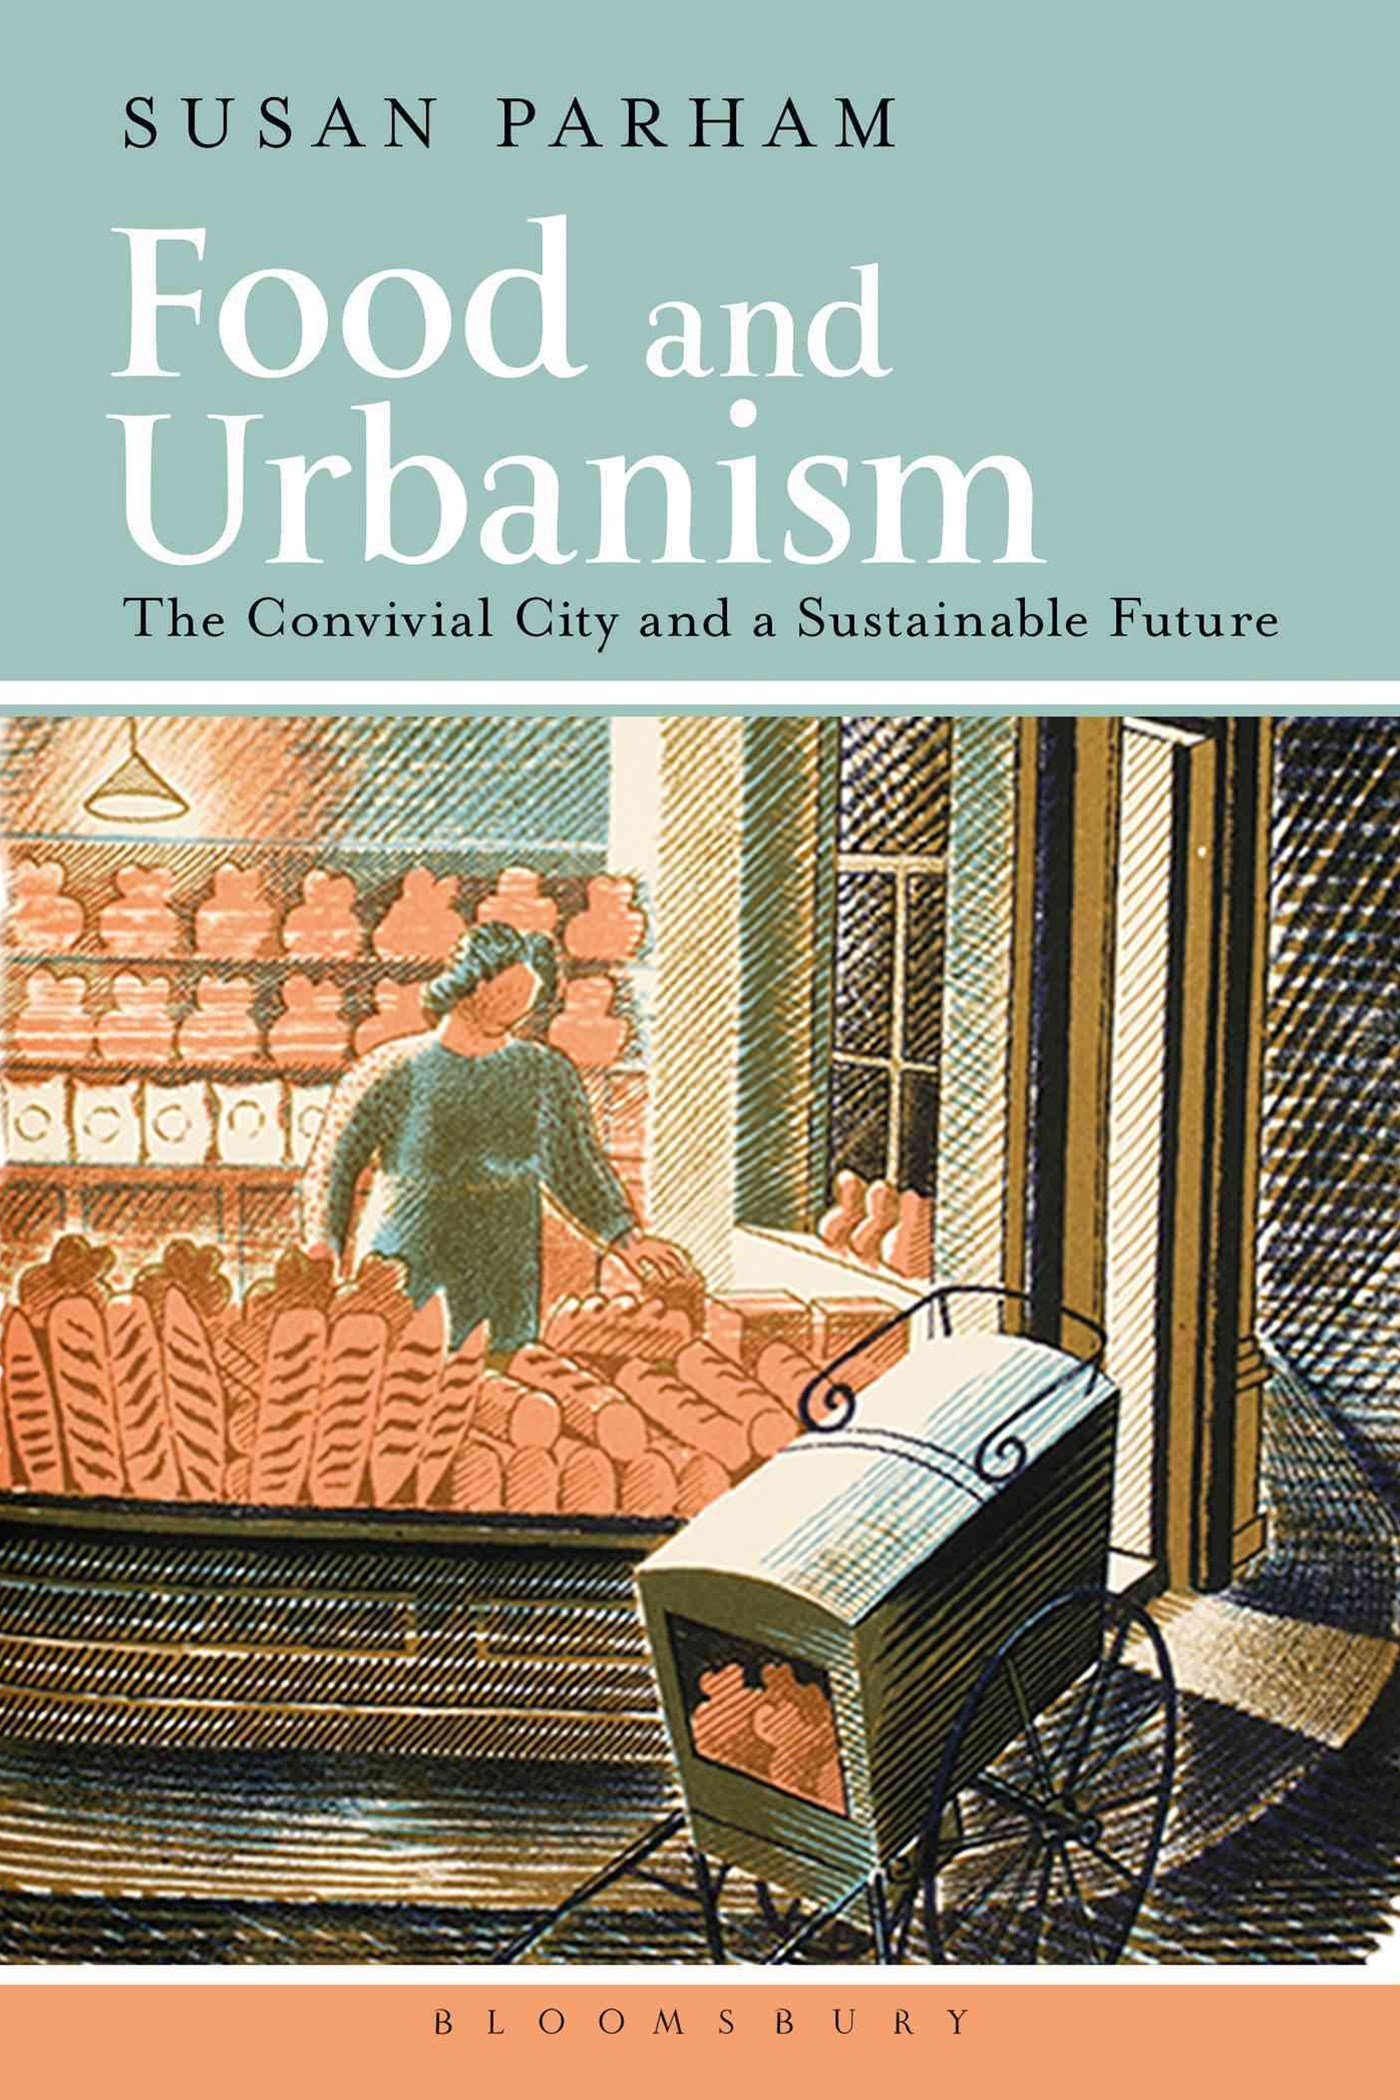 Food and Urbanism